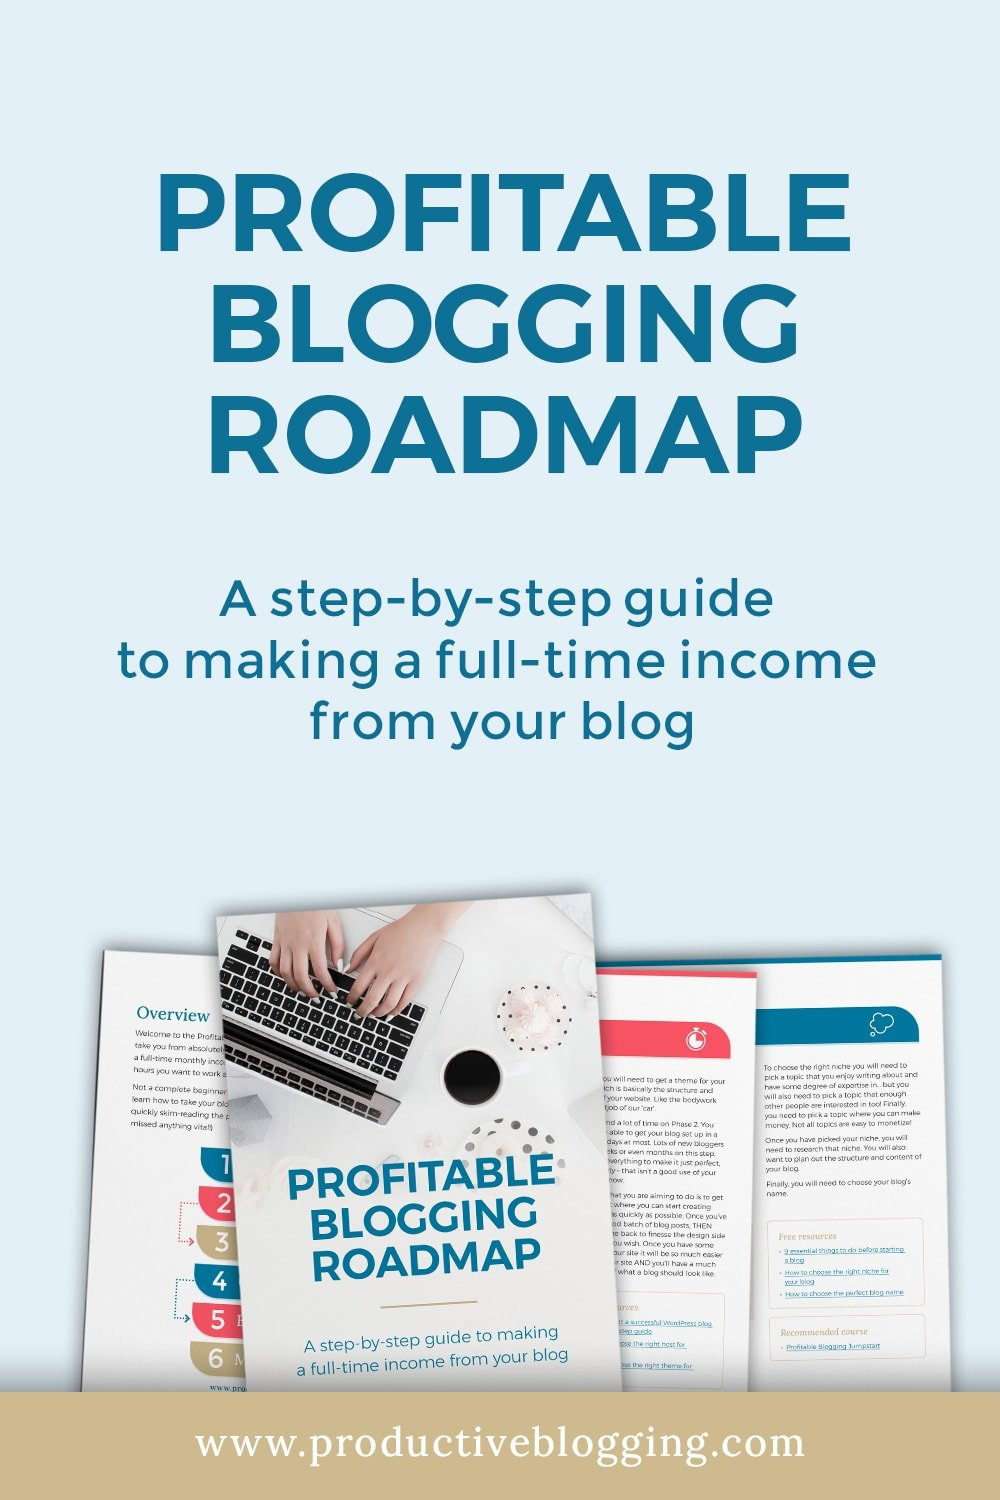 Want to make money blogging? The good news is making money from a blog is easier than you think. All you need is a good roadmap! My Profitable Blogging Roadmap is a step-by-step guide to making a full time income from your blog. It comes from years of blogging experience, research and experimentation… A journey that has led me to where I am today - a six figure blogger! #makemoneyblogging #moneymakingblog #profitableblog #profitableblogging #bloggingroadmap #sixfigureblogger #productiveblogging